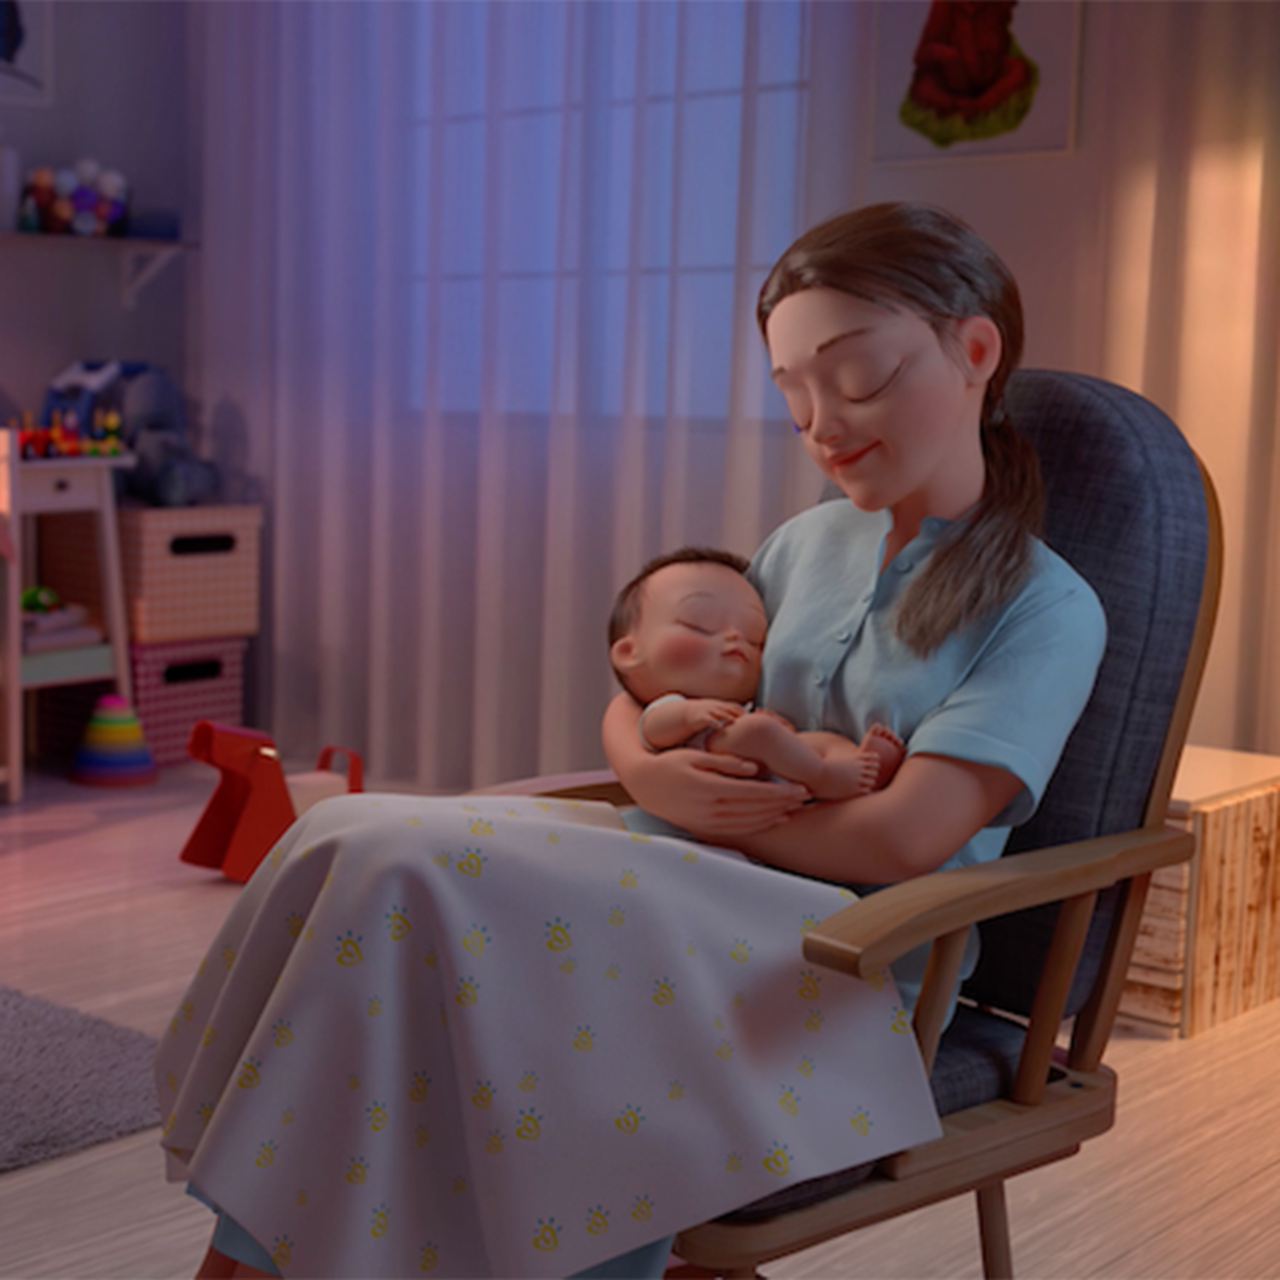 Serviceplan Korea: Your Baby's Dream Never Stops With Pampers